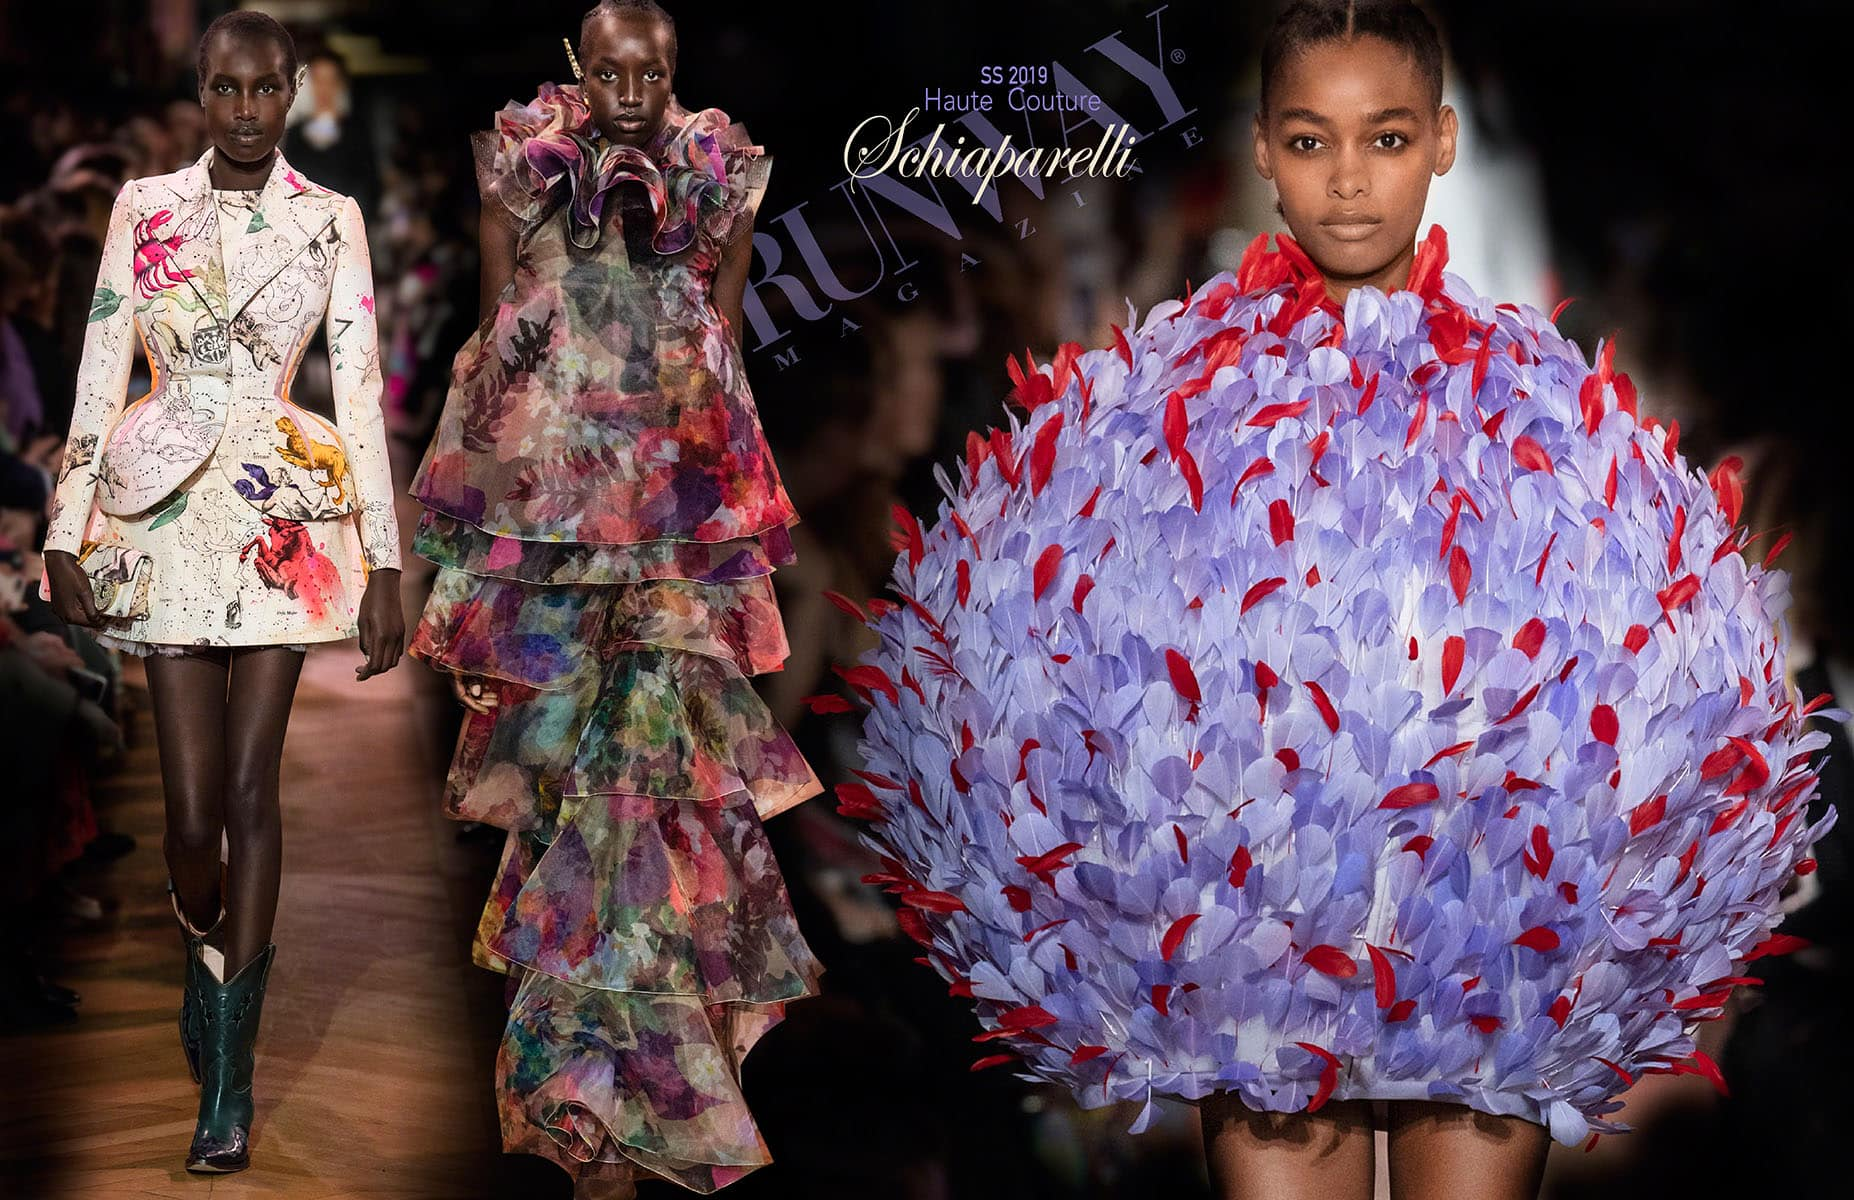 Schiaparelli Haute Couture Spring Summer 2019 by RUNWAY MAGAZINE